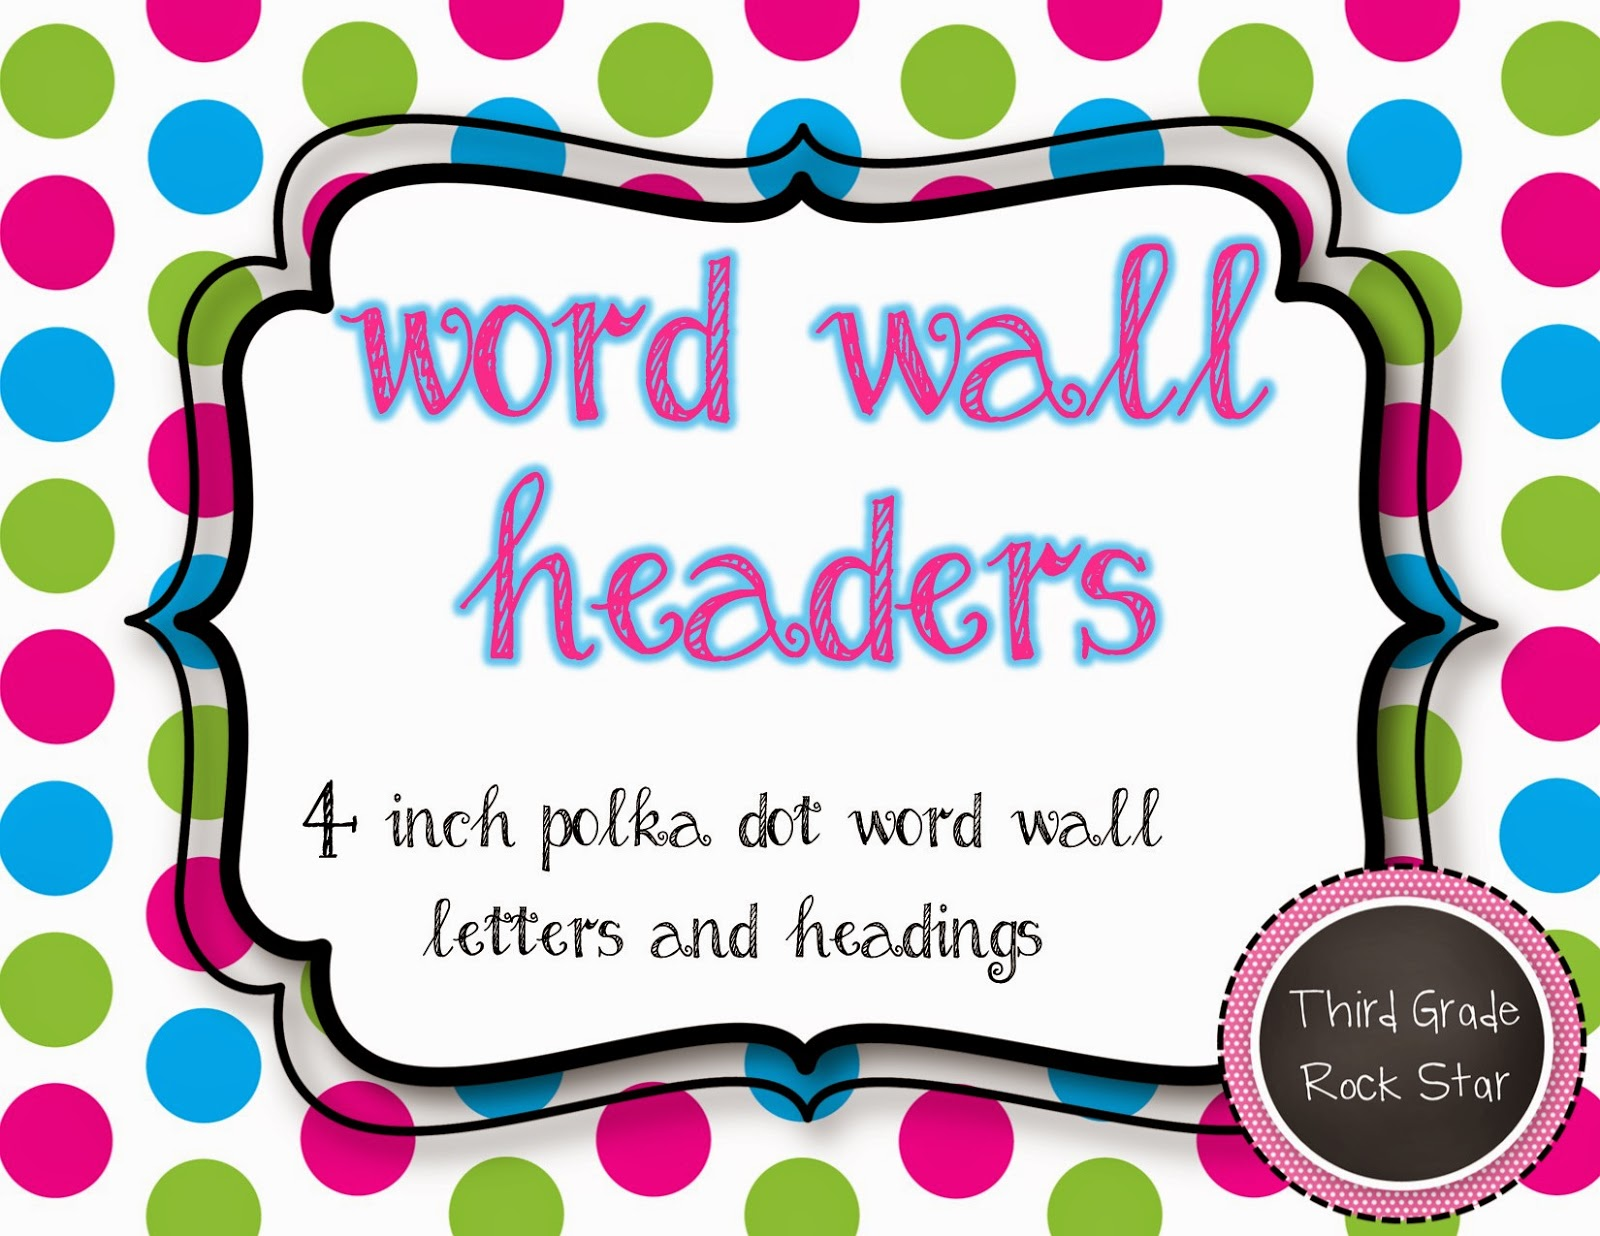 Word Wall Letters Amusing Third Grade Rock Star Tpt Tuesday Review